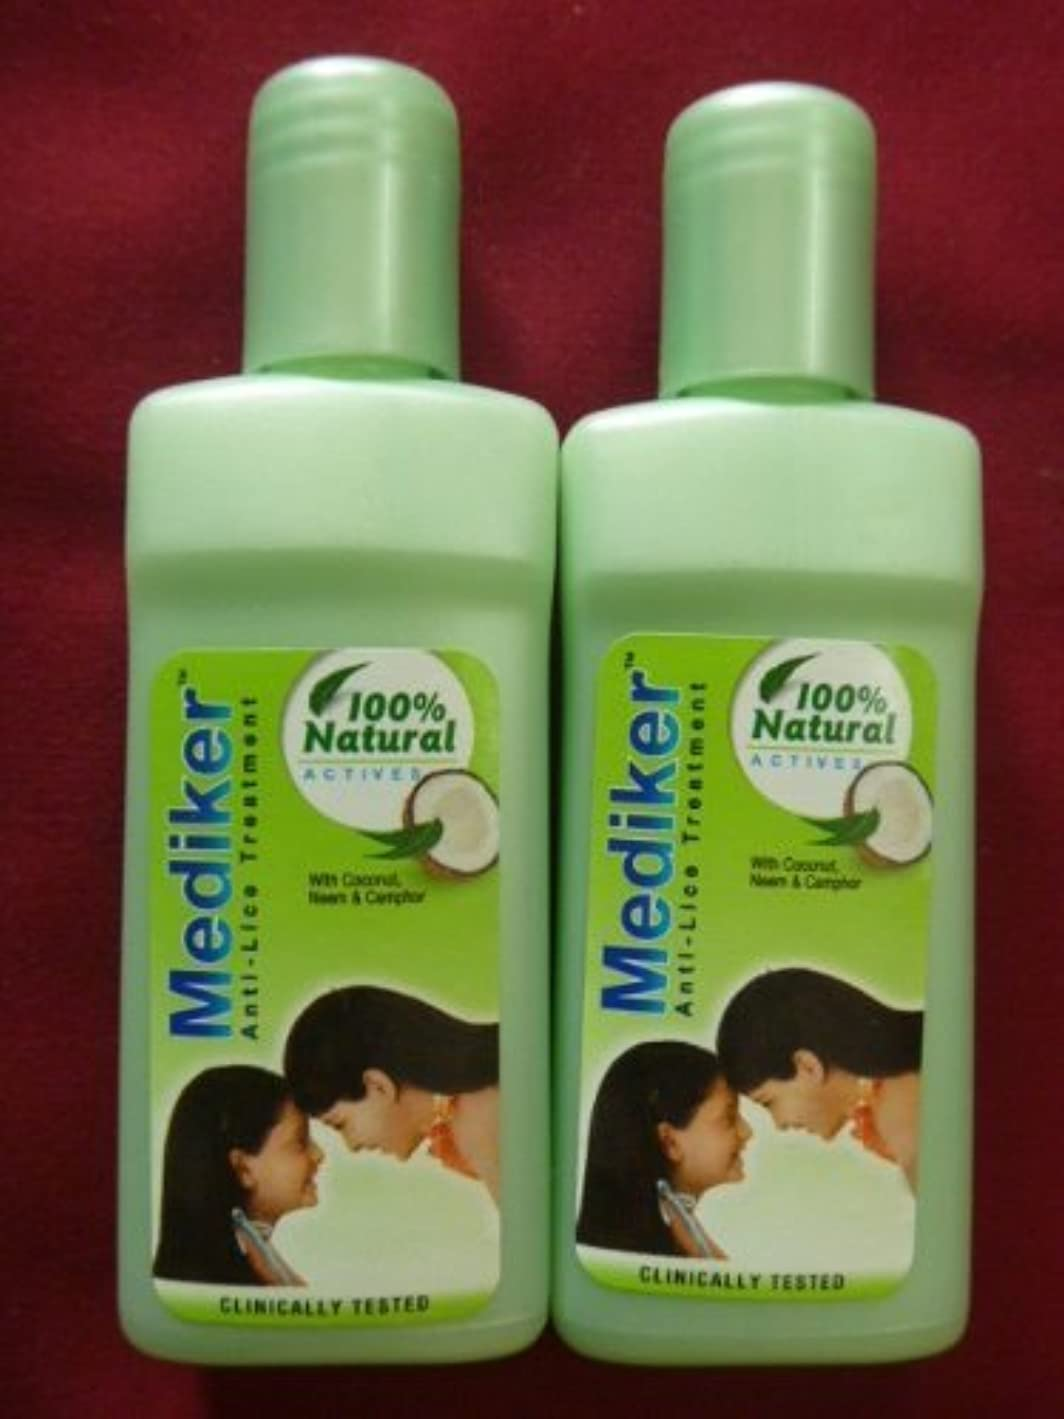 懲らしめ虚弱近々2 X Mediker Anti Lice Remover Treatment Head Shampoo 100% Lice Remove 50ml X 2 = 100ml by Mediker [並行輸入品]